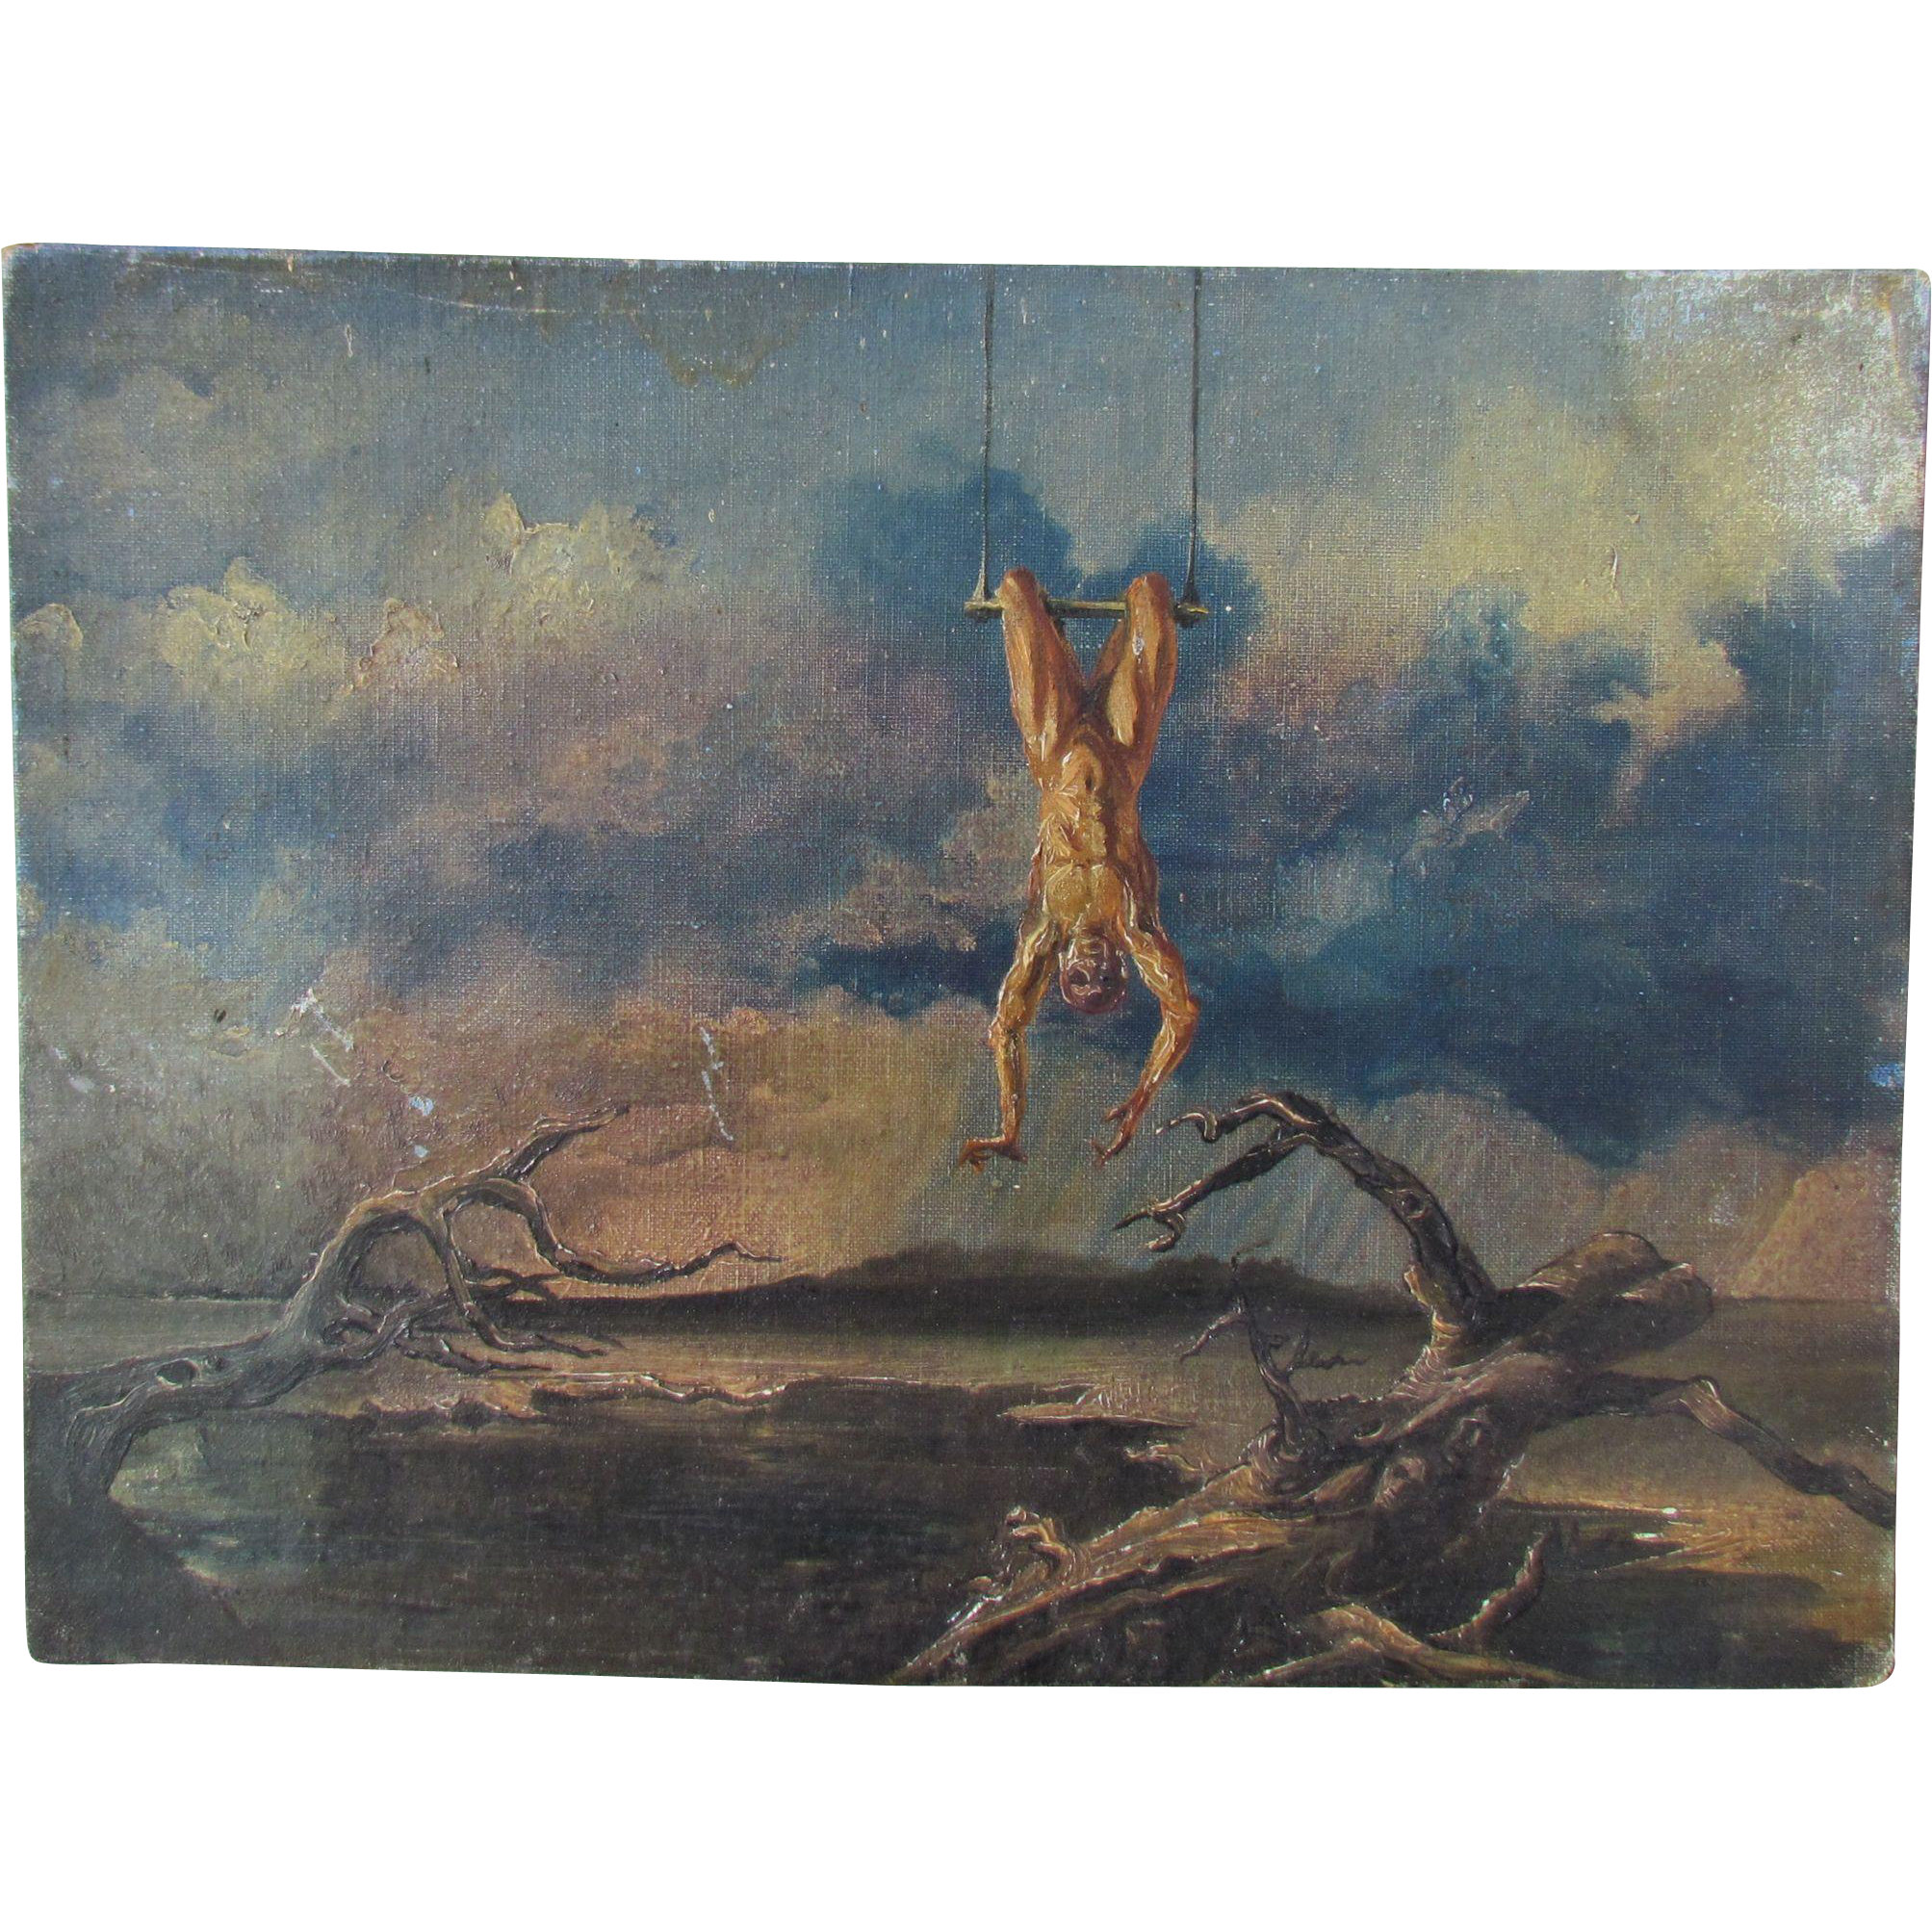 William Ward BEECHER ~ CT. artist LISTED oil on canvasboard of acrobat surreal